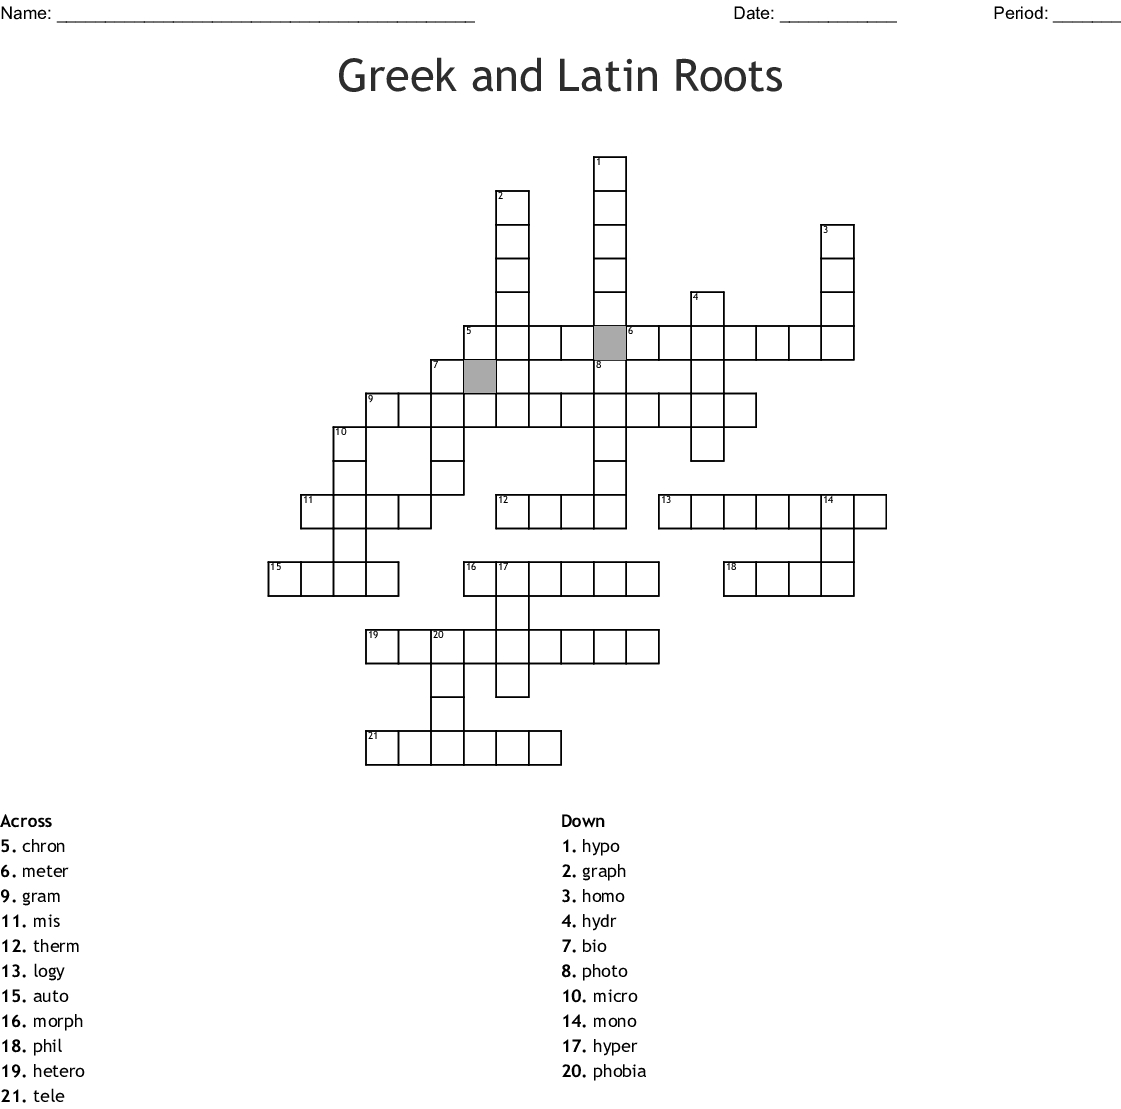 Greek And Latin Roots Crossword - Wordmint - Free Printable Greek And Latin Roots